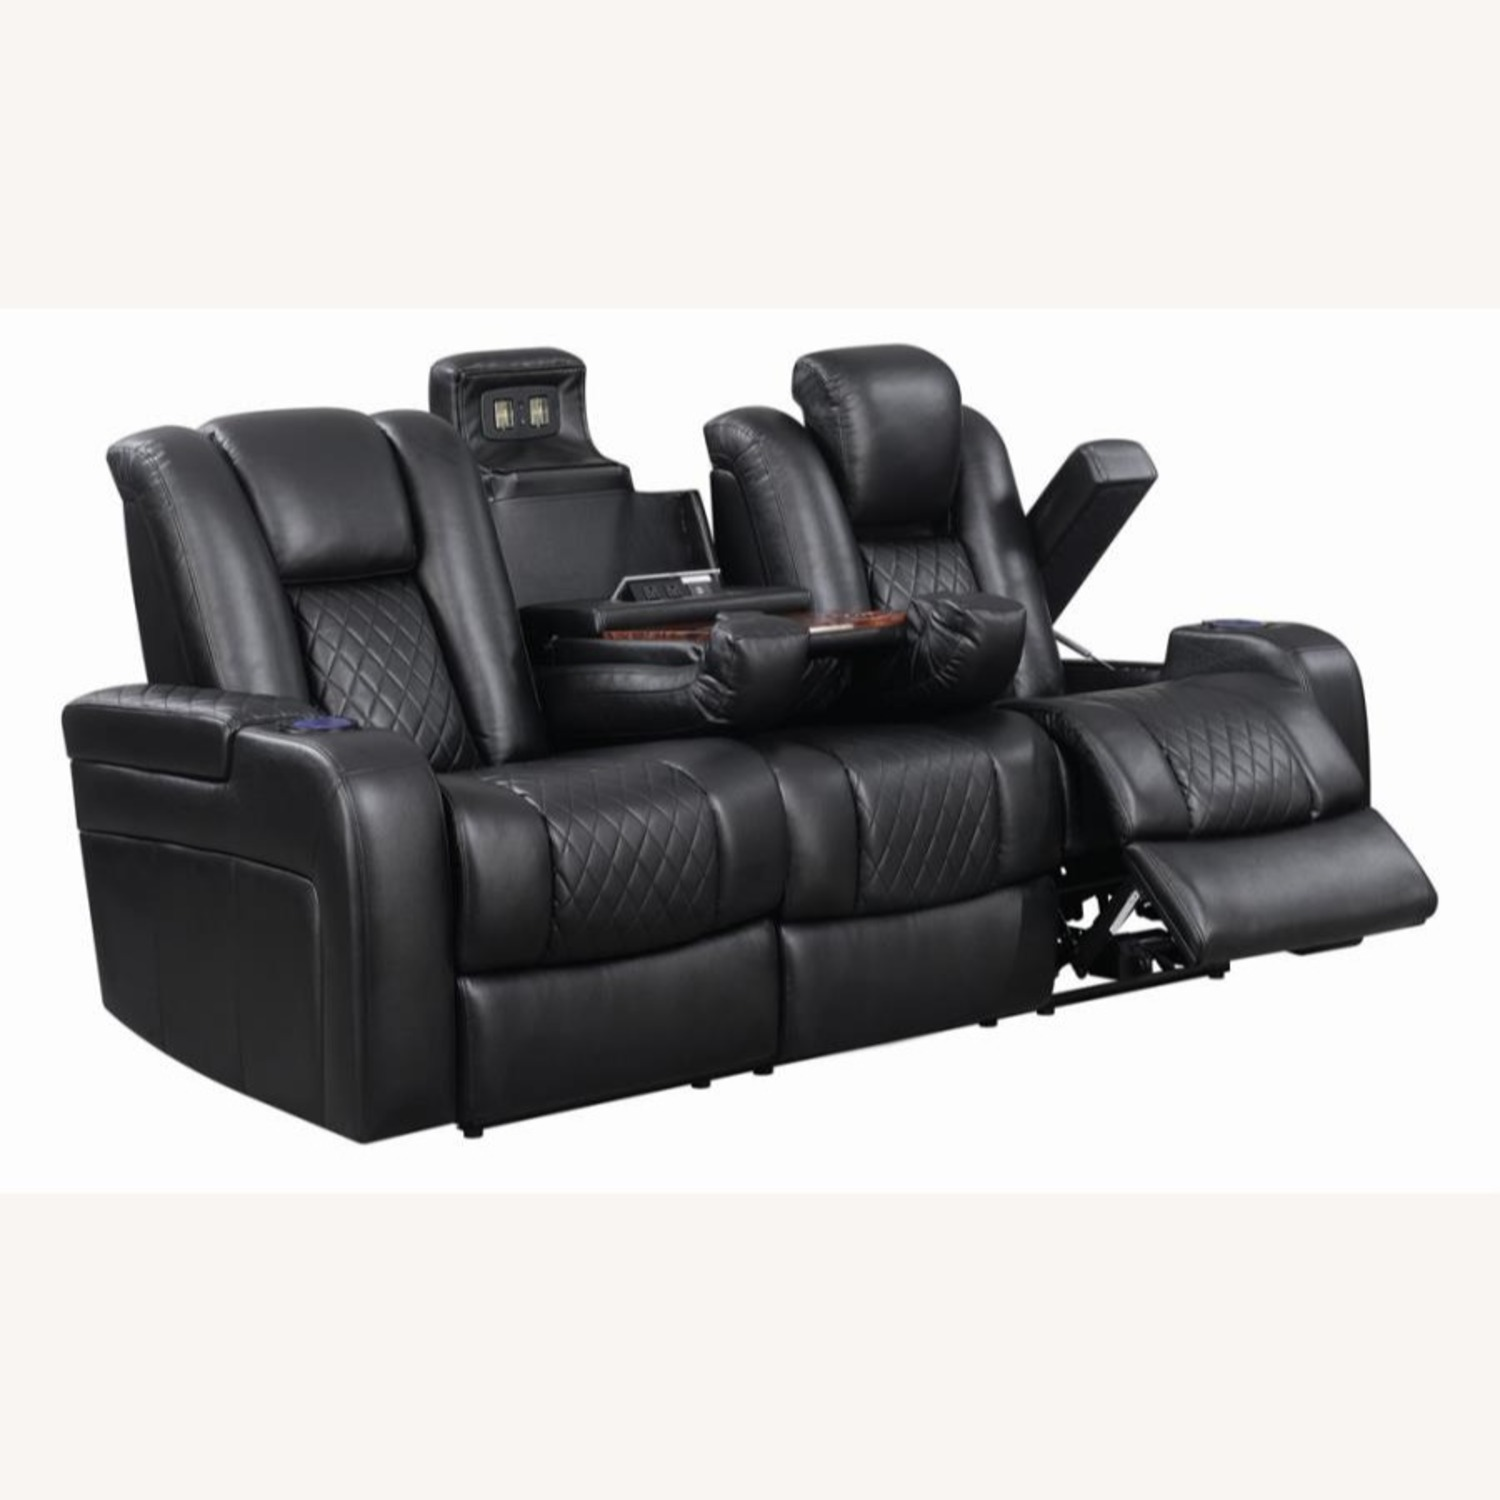 Power Sofa In Black Leather W/ LED Cupholder - image-2